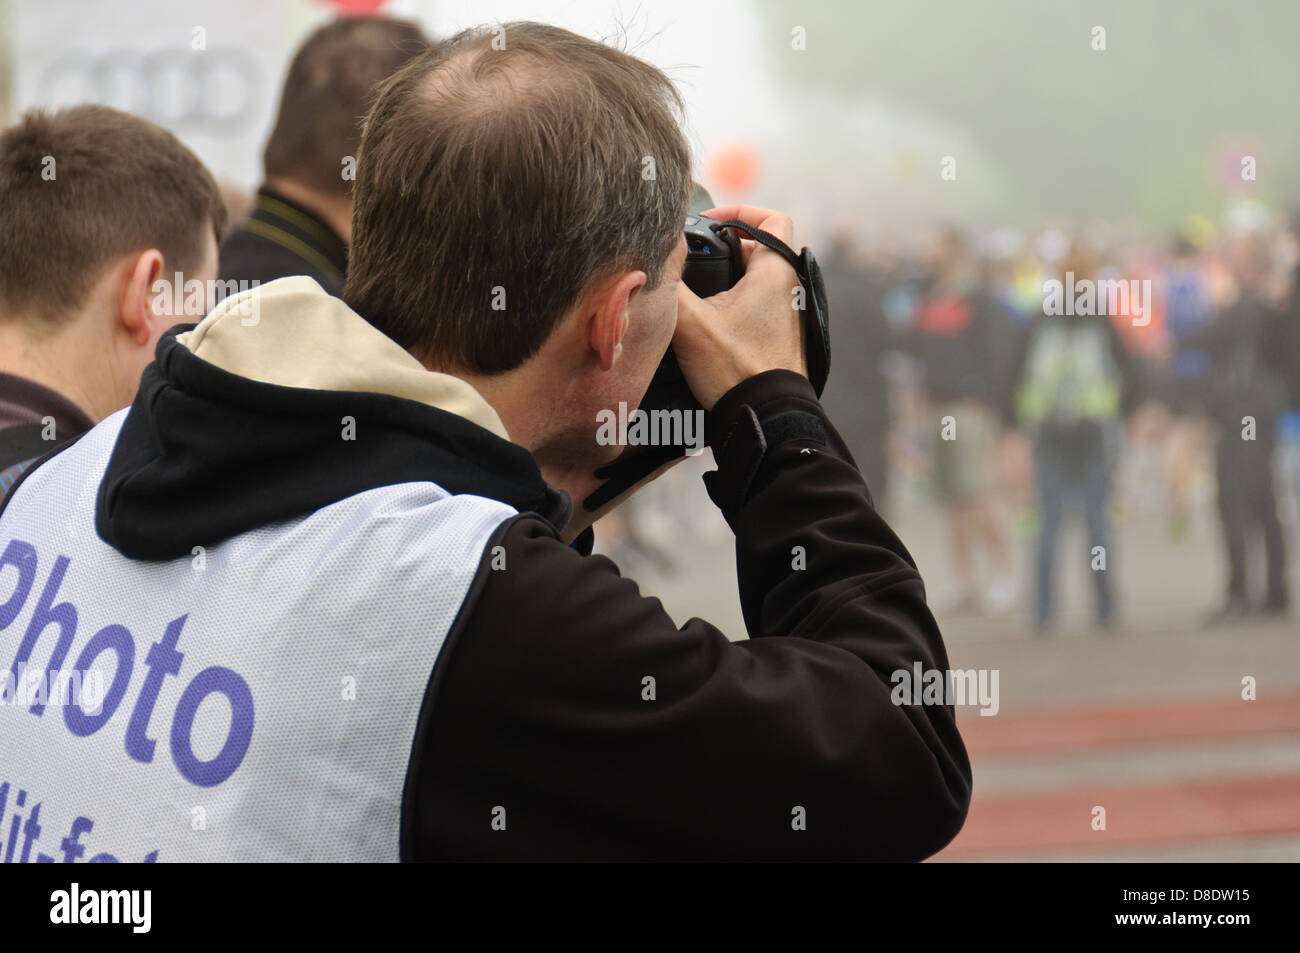 Official accredited professional photographer photographing a public event - Stock Image